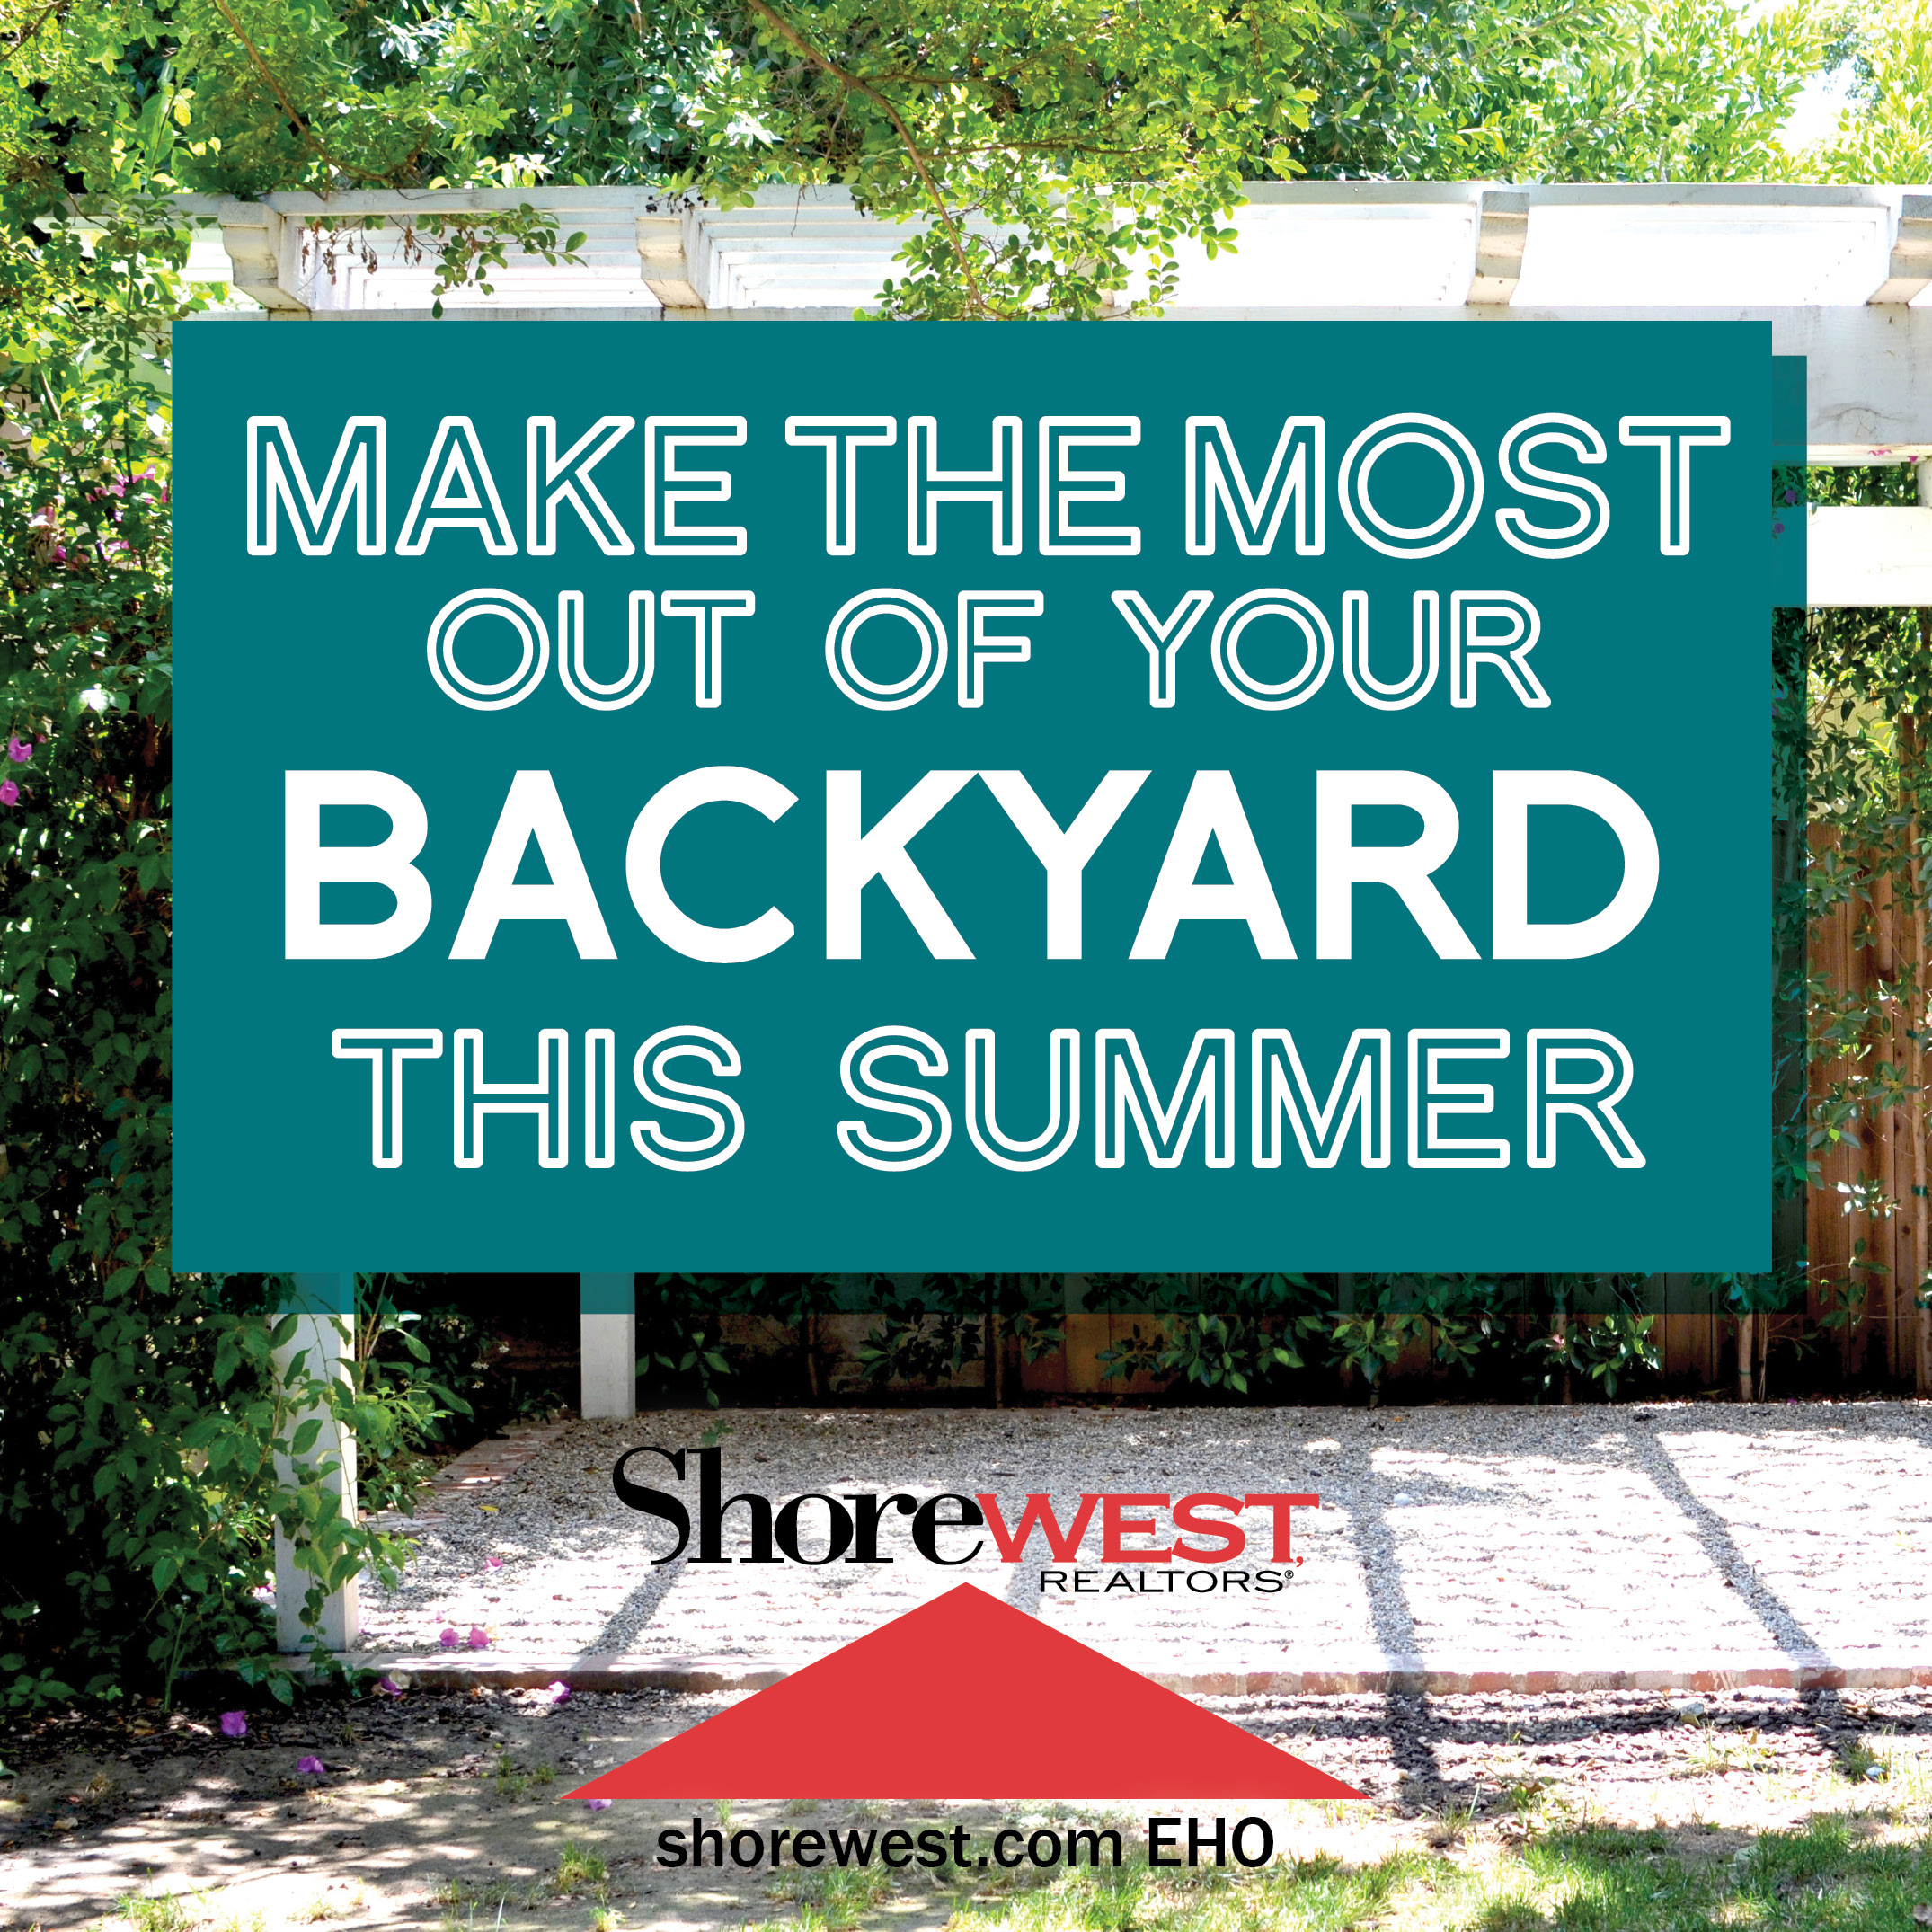 shorewest realtors shares 20 ways to transform your backyard for